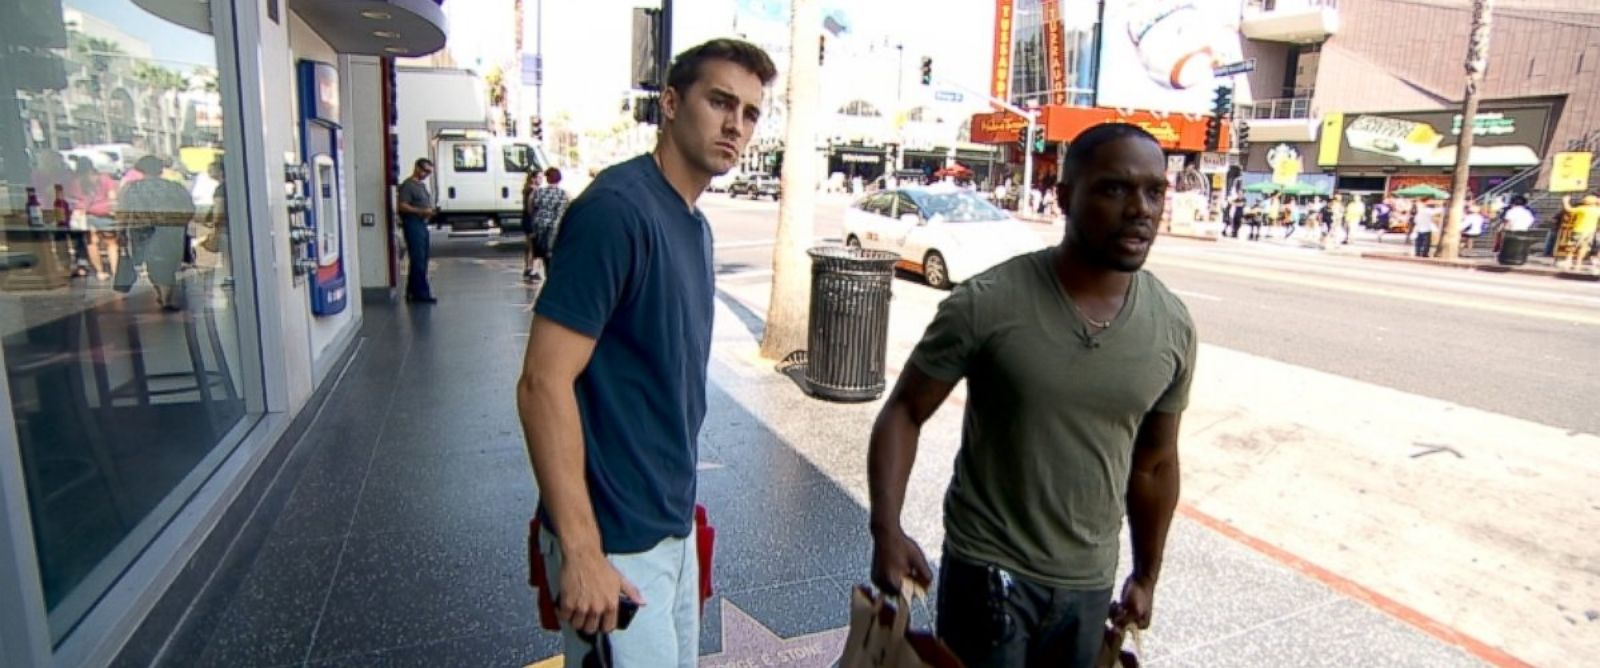 """PHOTO: Vine stars Cody Johns and Greg Davis, who goes by the username """"Klarity,"""" are seen here working on a new Vine video in Los Angeles."""